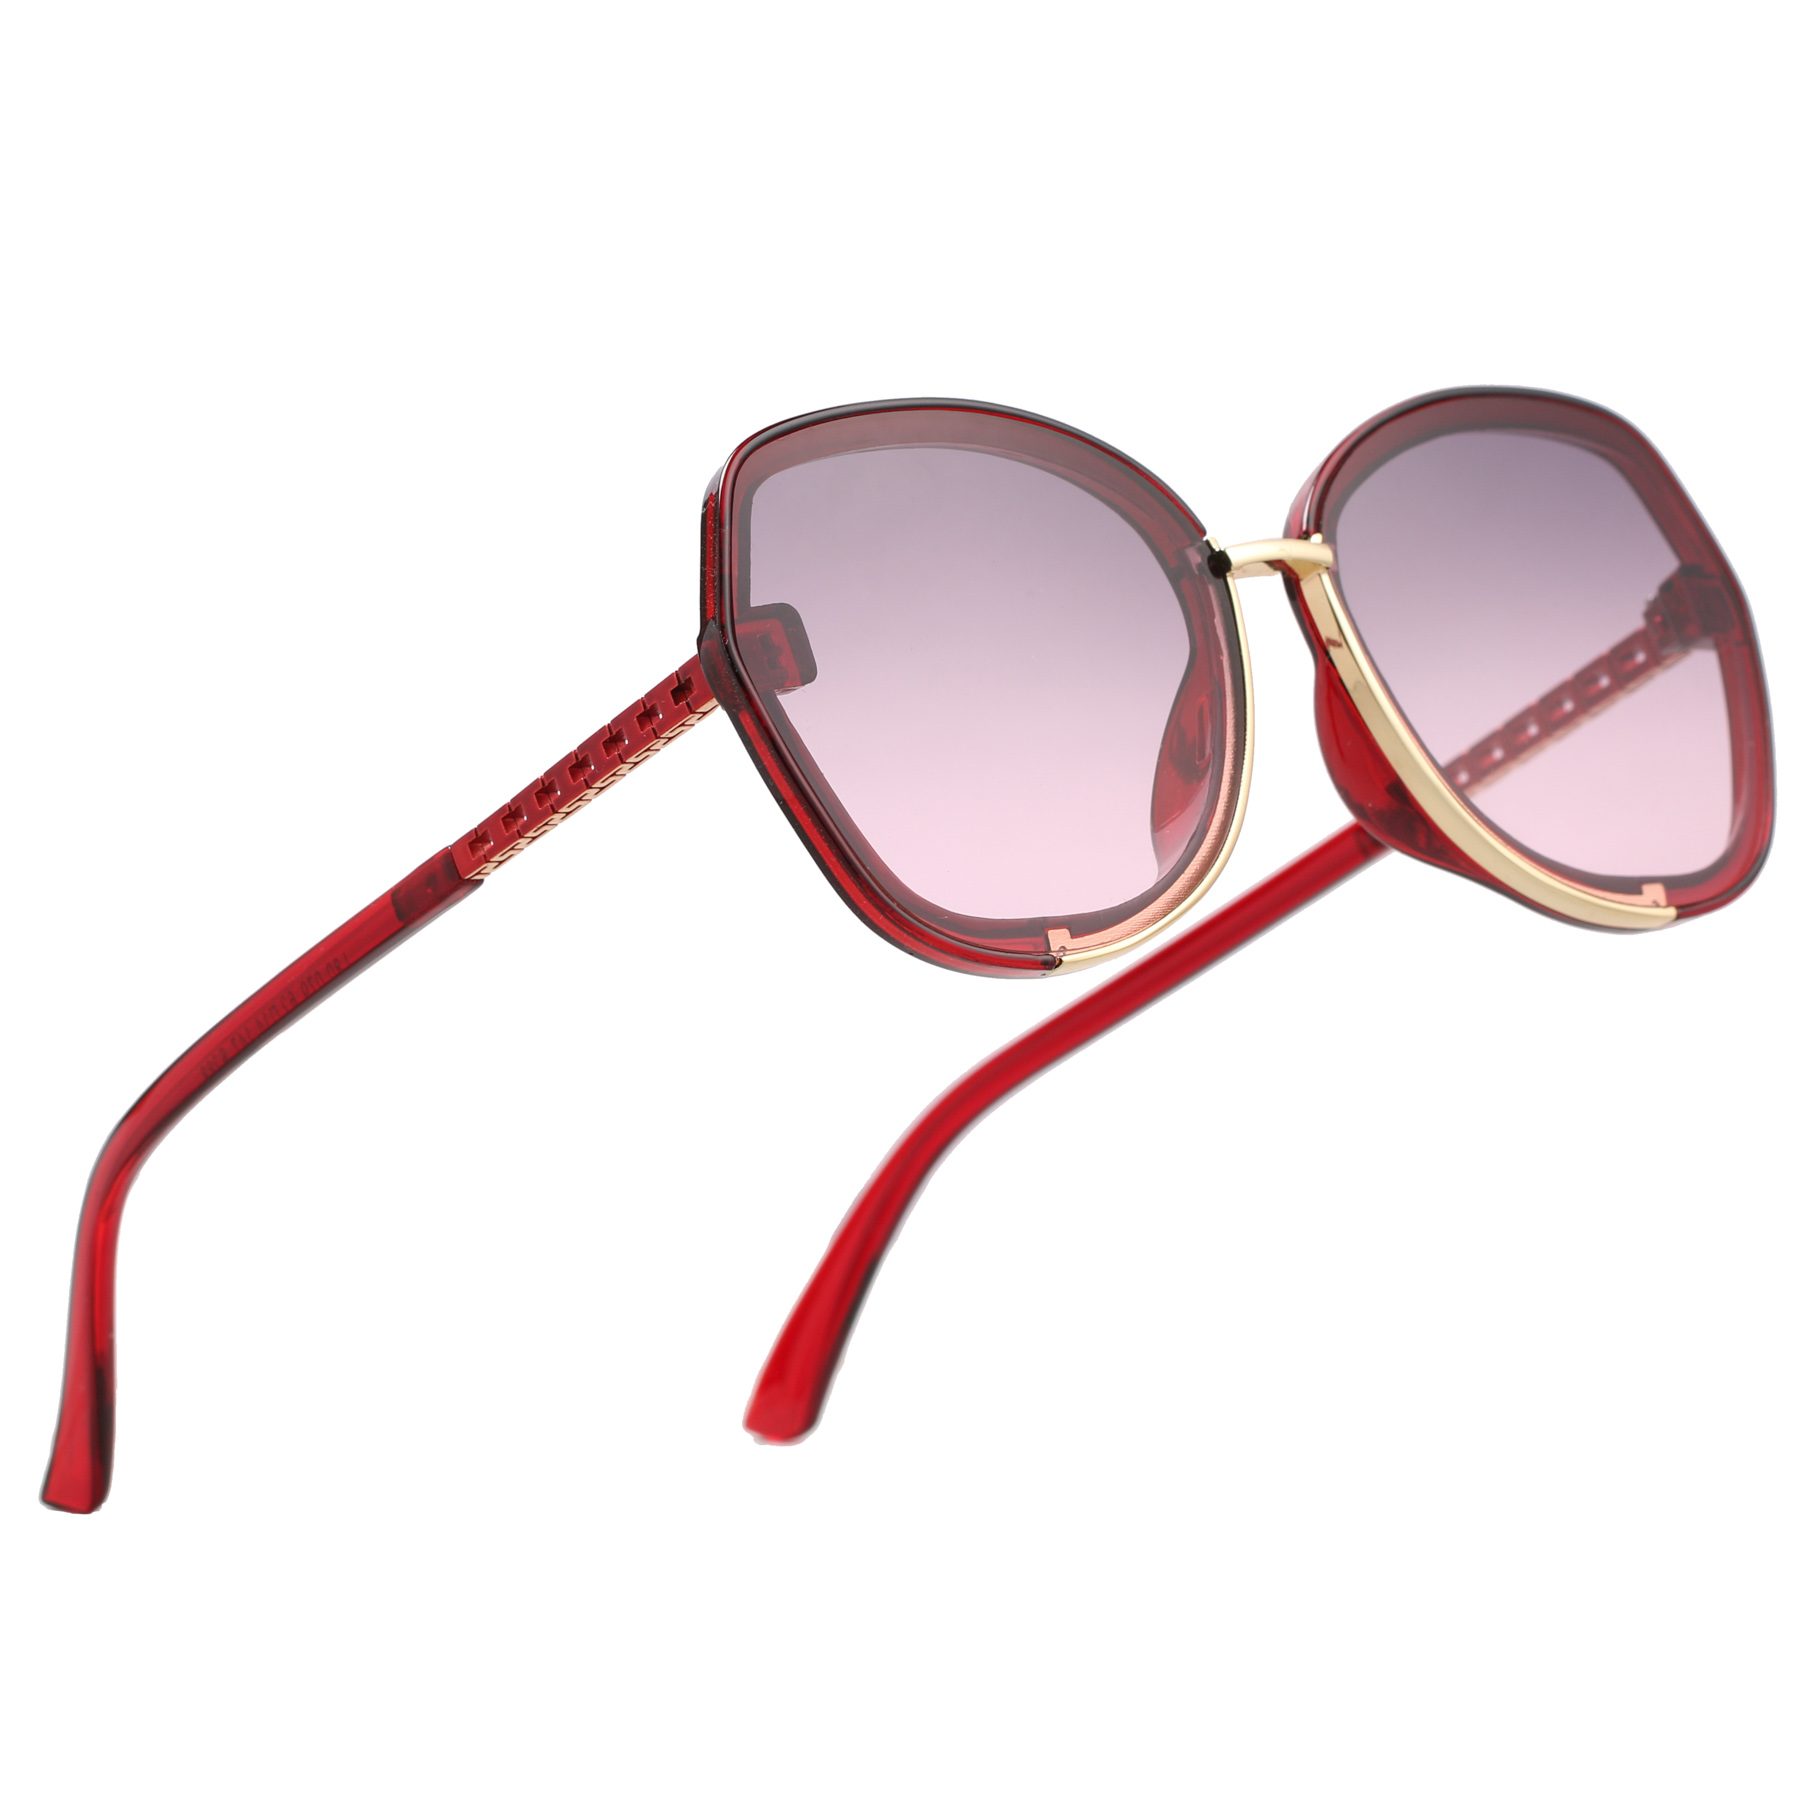 Royal Son Red Polycarbonate Butterfly Fame Sunglasses For Men